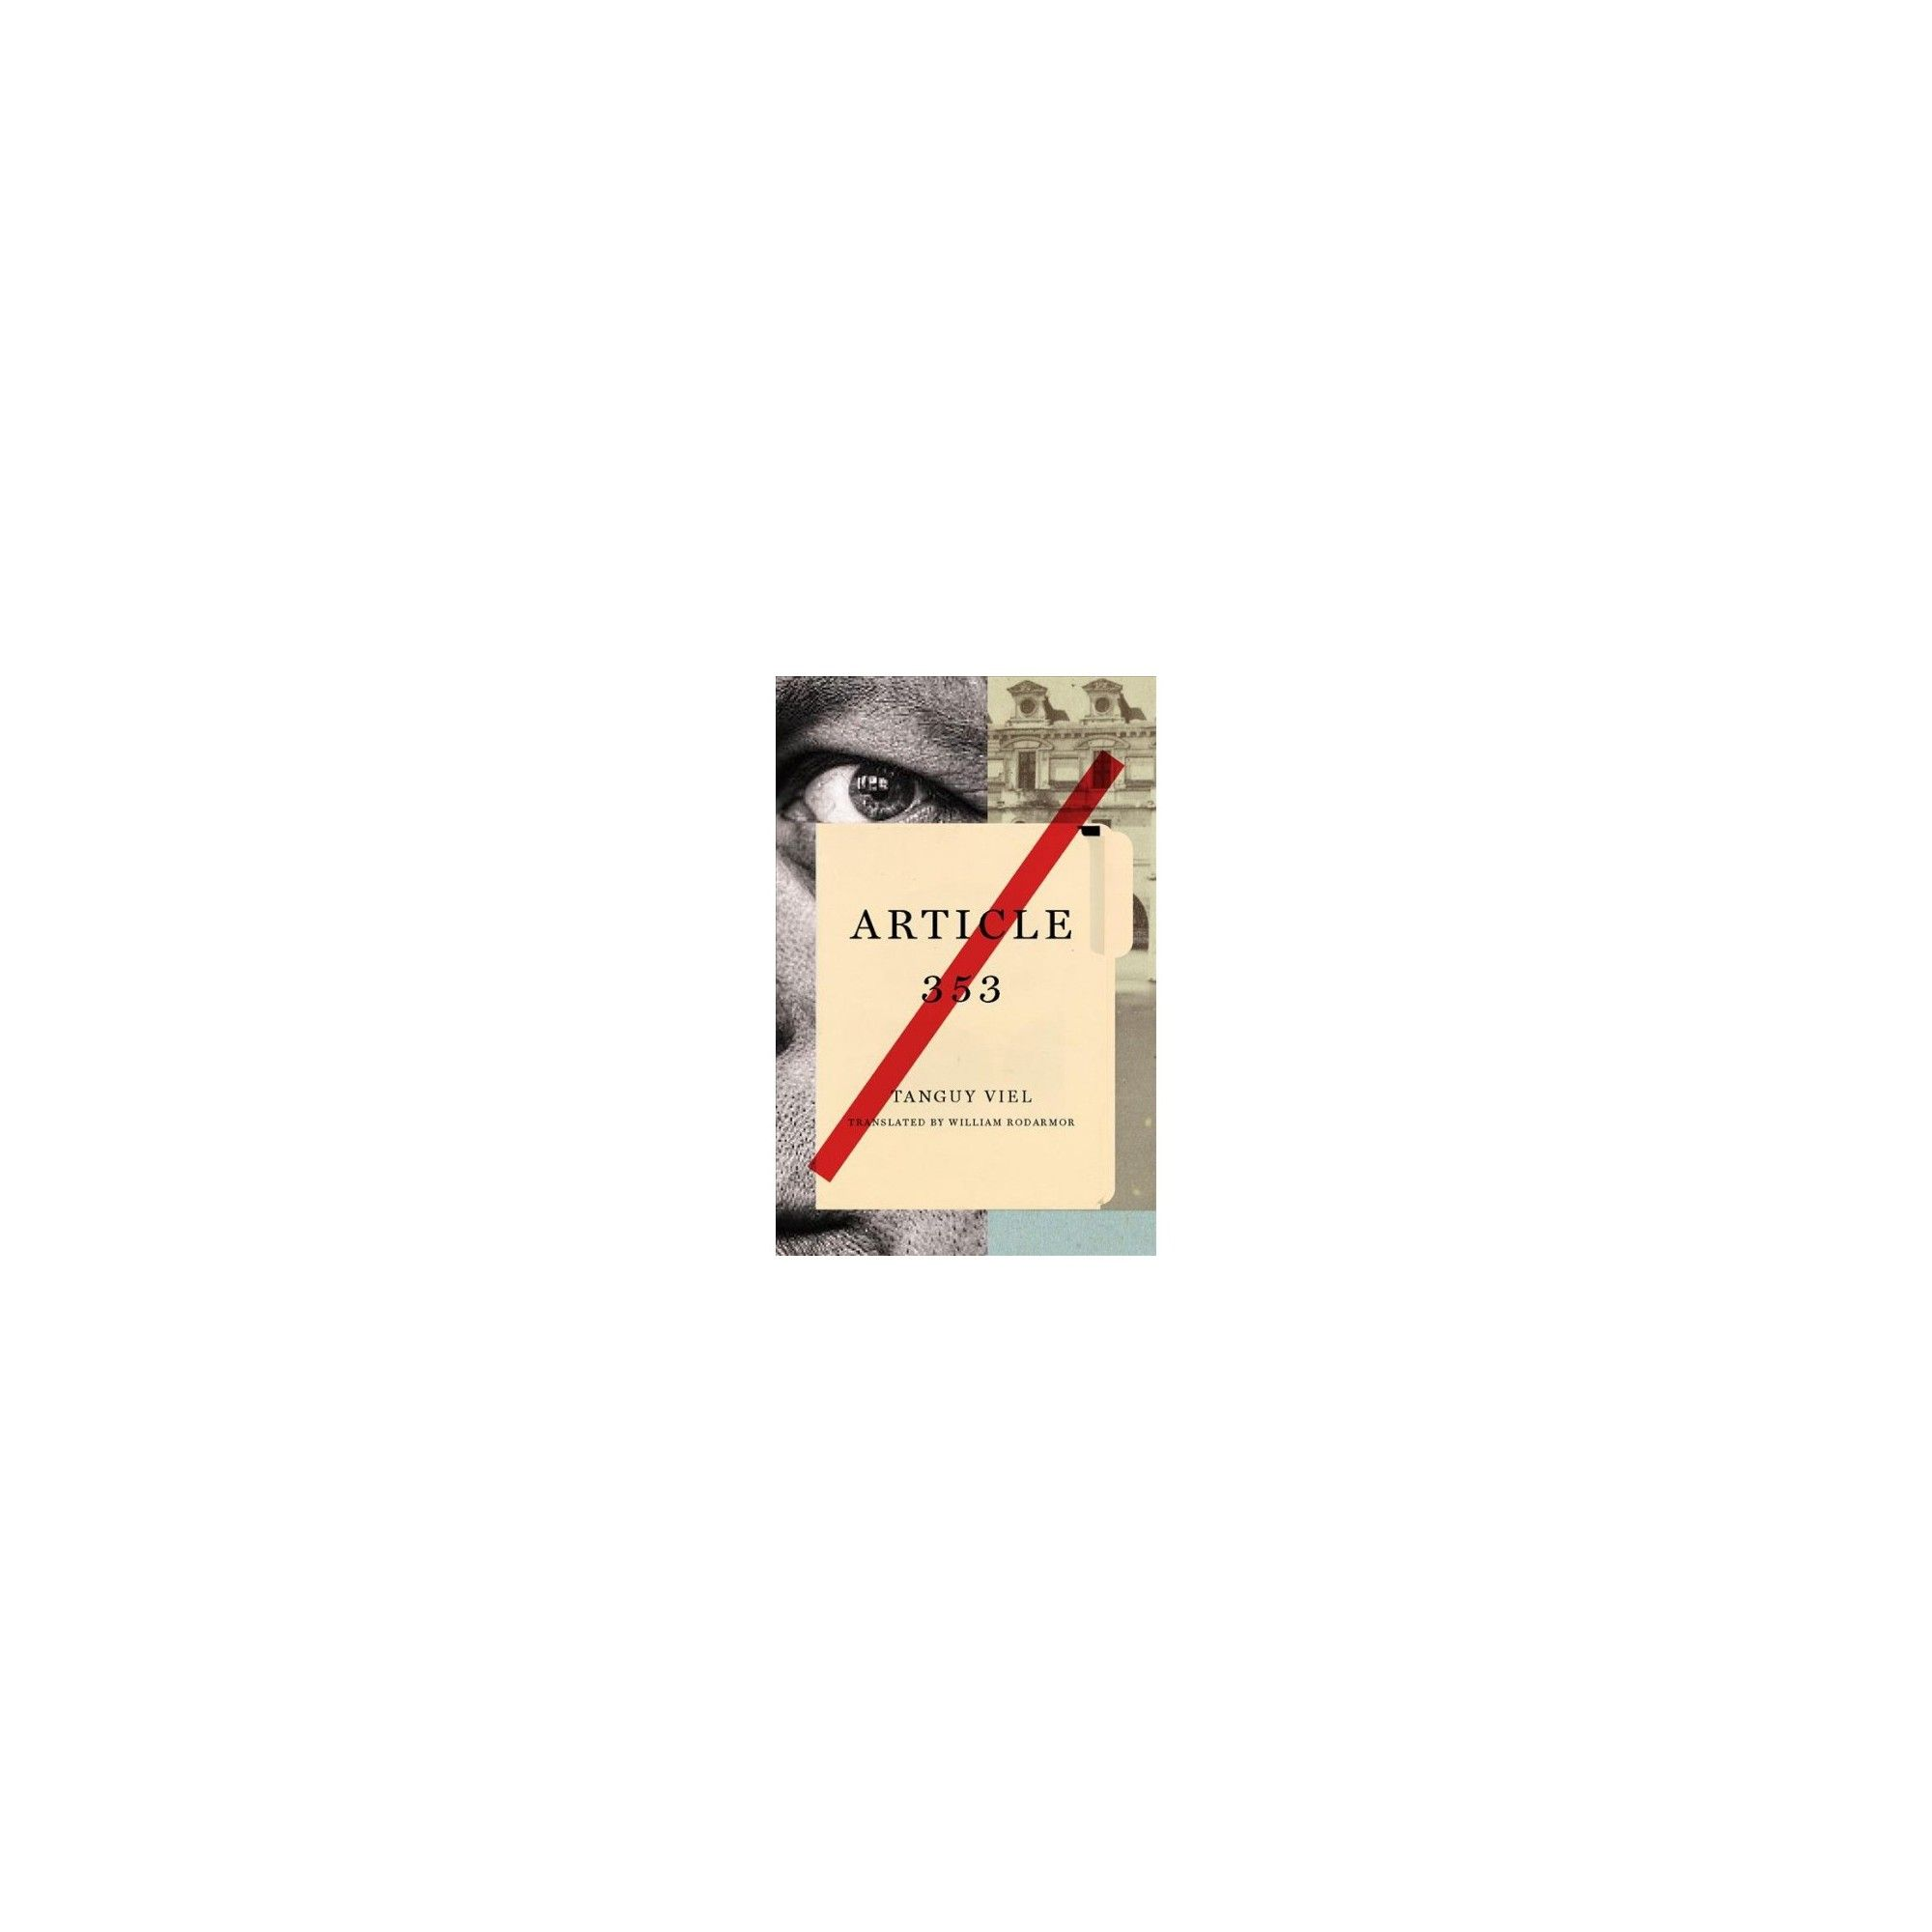 Article 353 - by Tanguy Viel (Paperback)